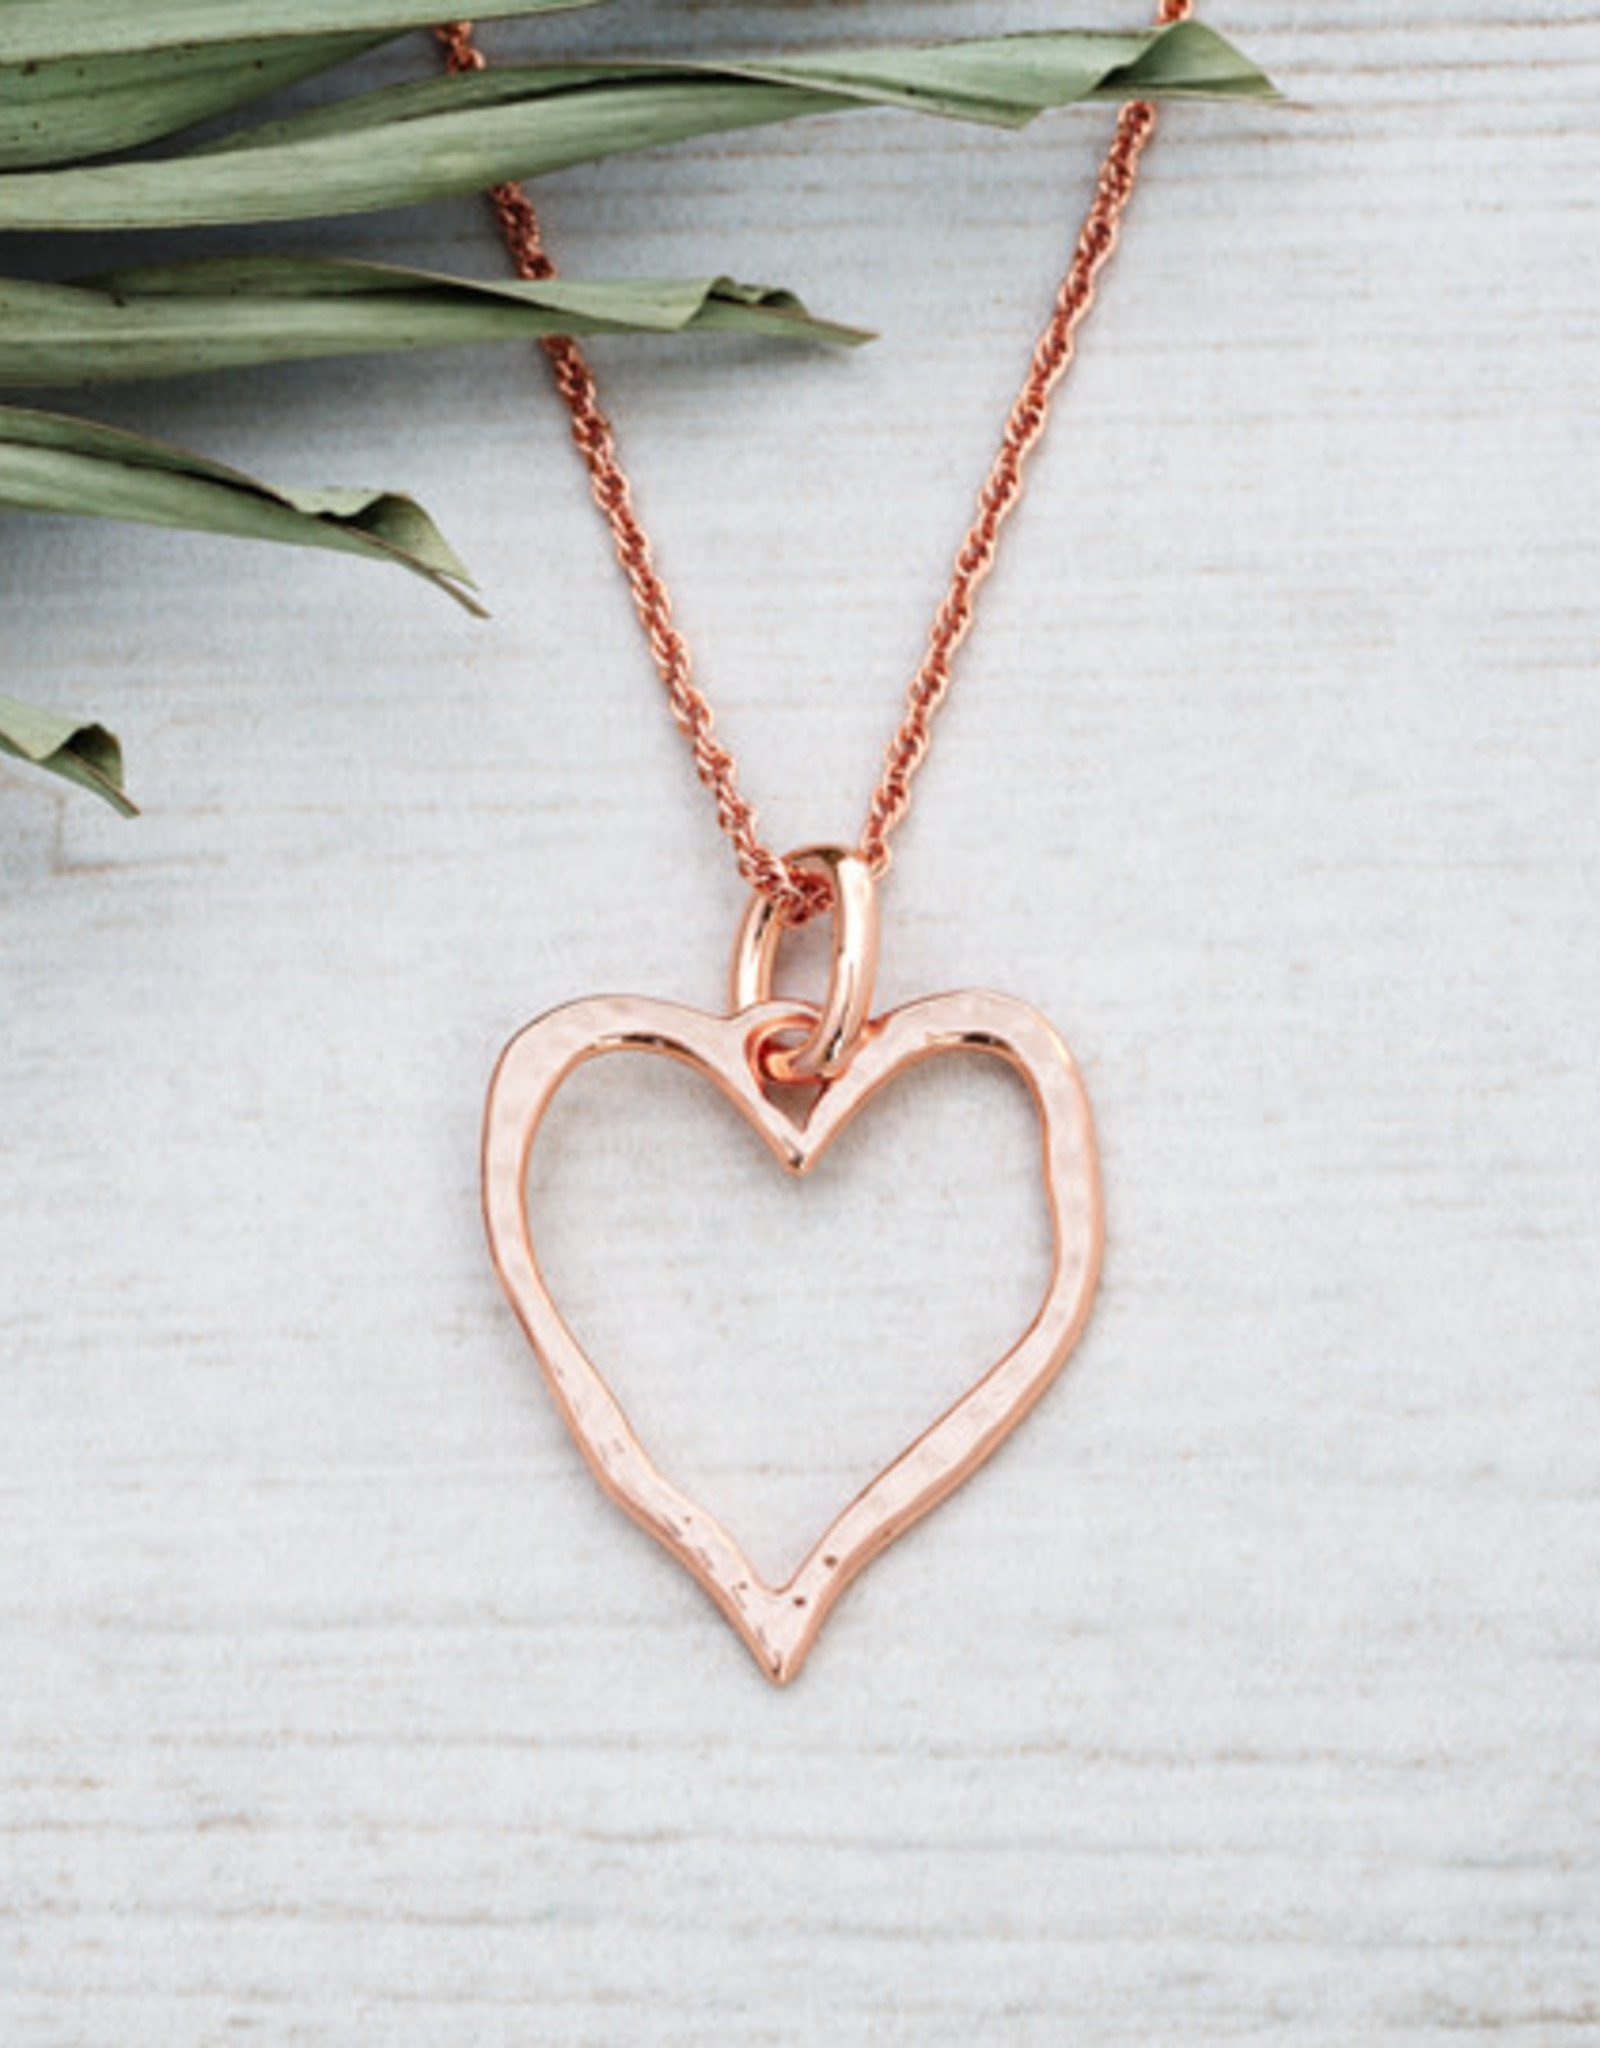 Glee Giving Heart Necklace